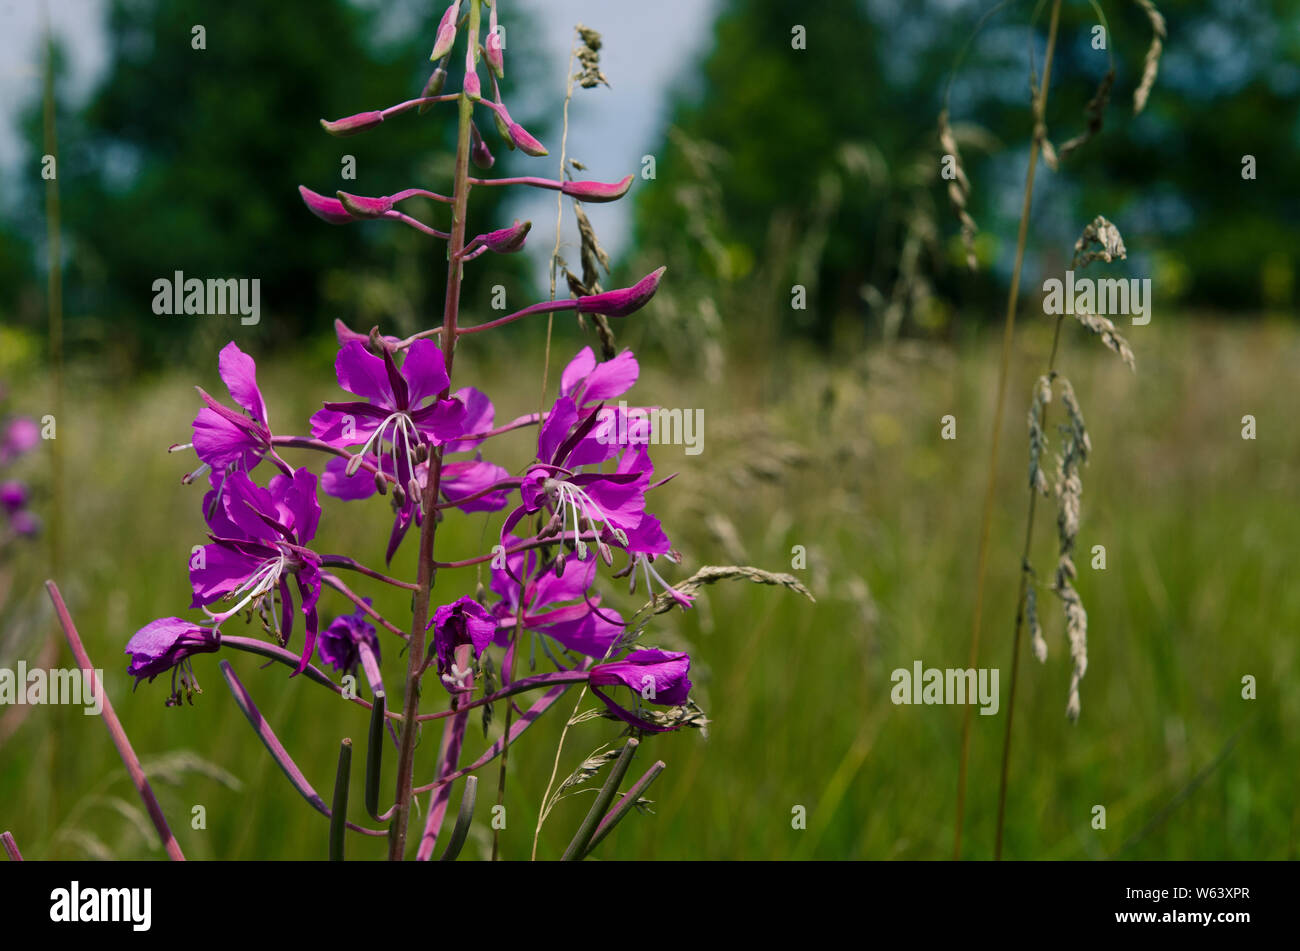 Medicinal plant: Epilobium Species, Blooming Sally, Fireweed, Great Willowherb, Rosebay Willow - tea like herb with beautiful pink flower and very use Stock Photo